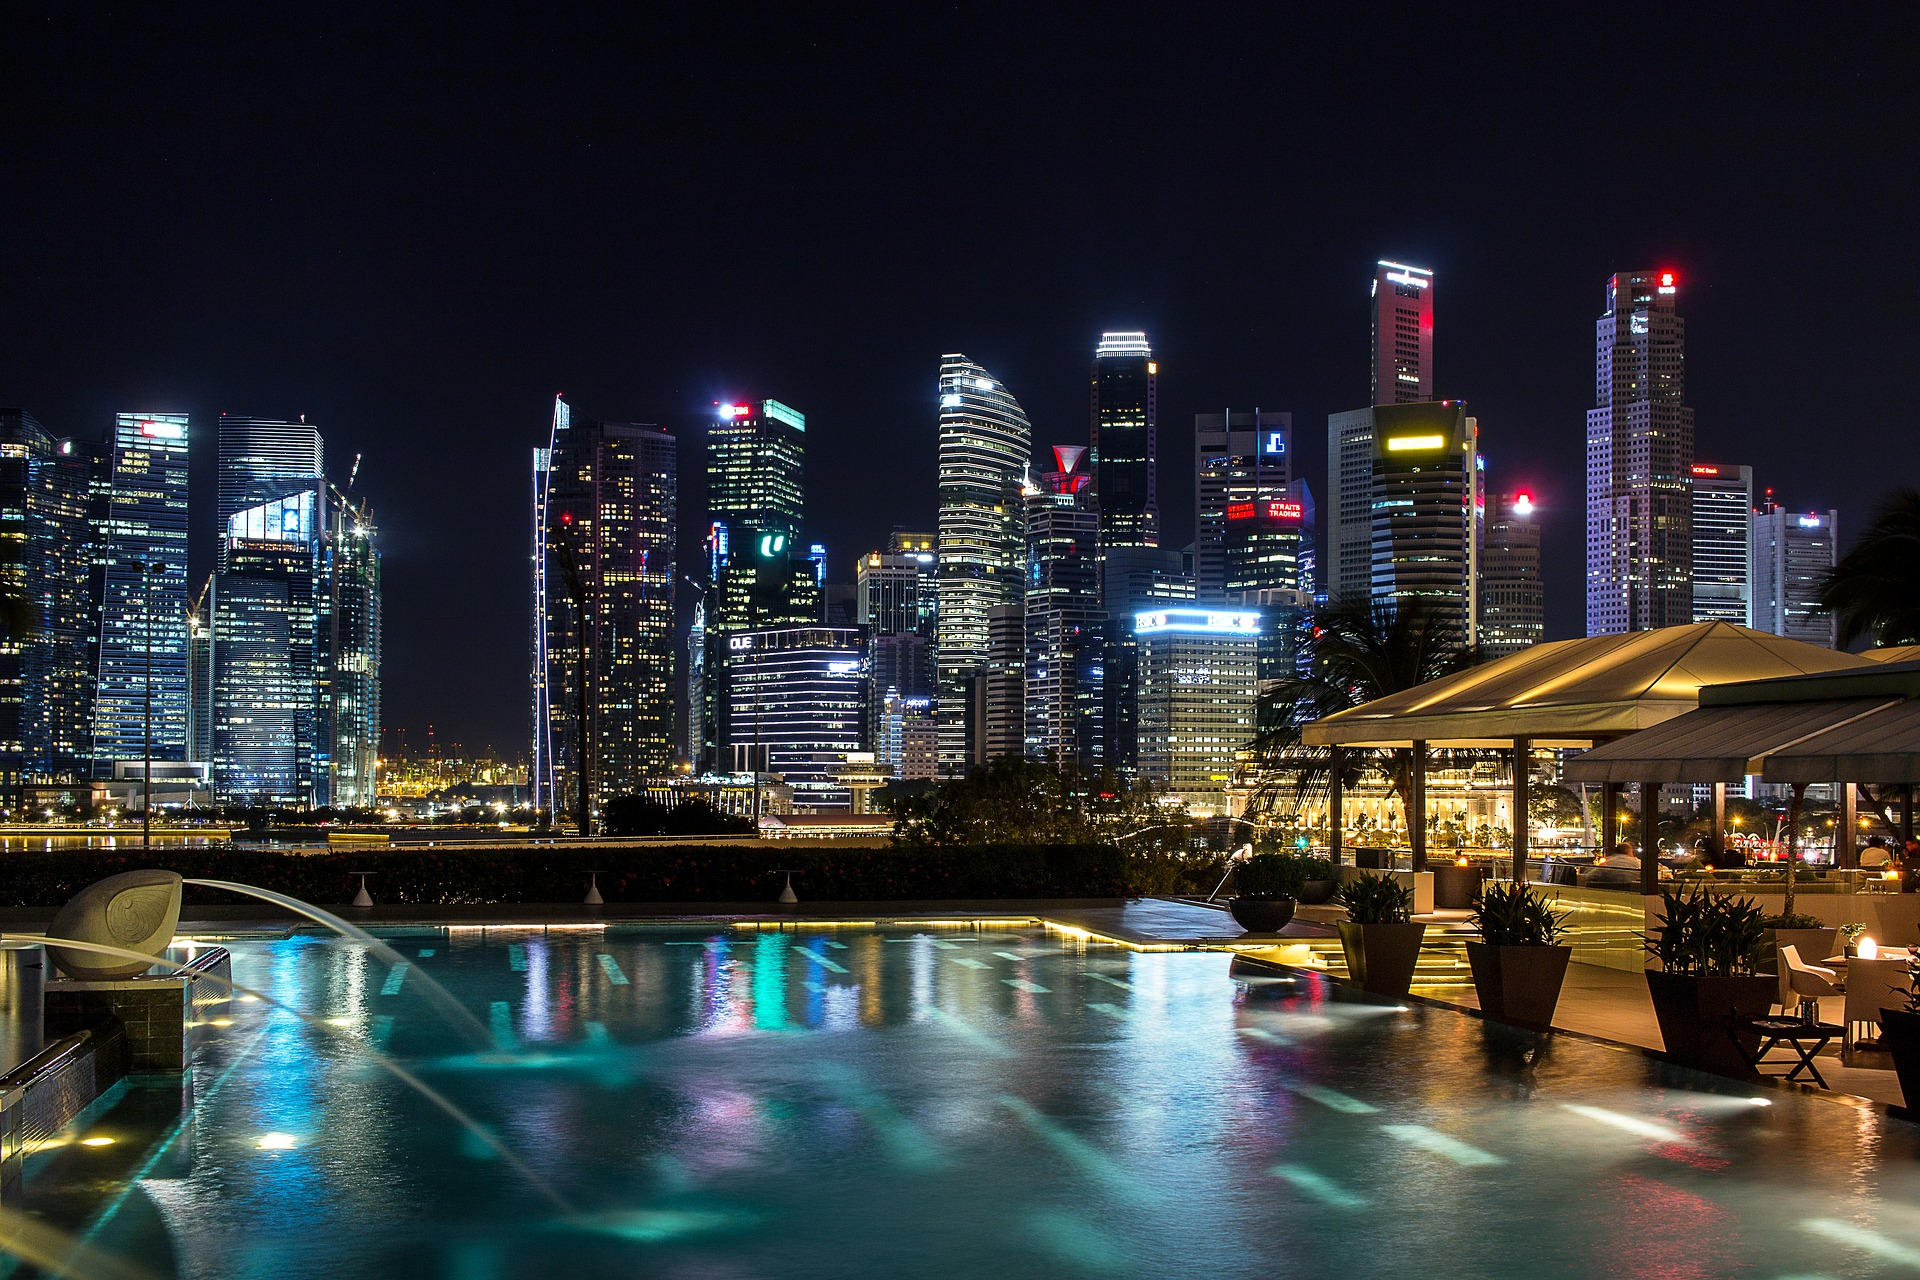 Aberdeen Standard Investments (ASI) - Aberdeen Standard Investments (ASI) has appointed Sai Min Chow as the head of investment research, real estate, Asia Pacific